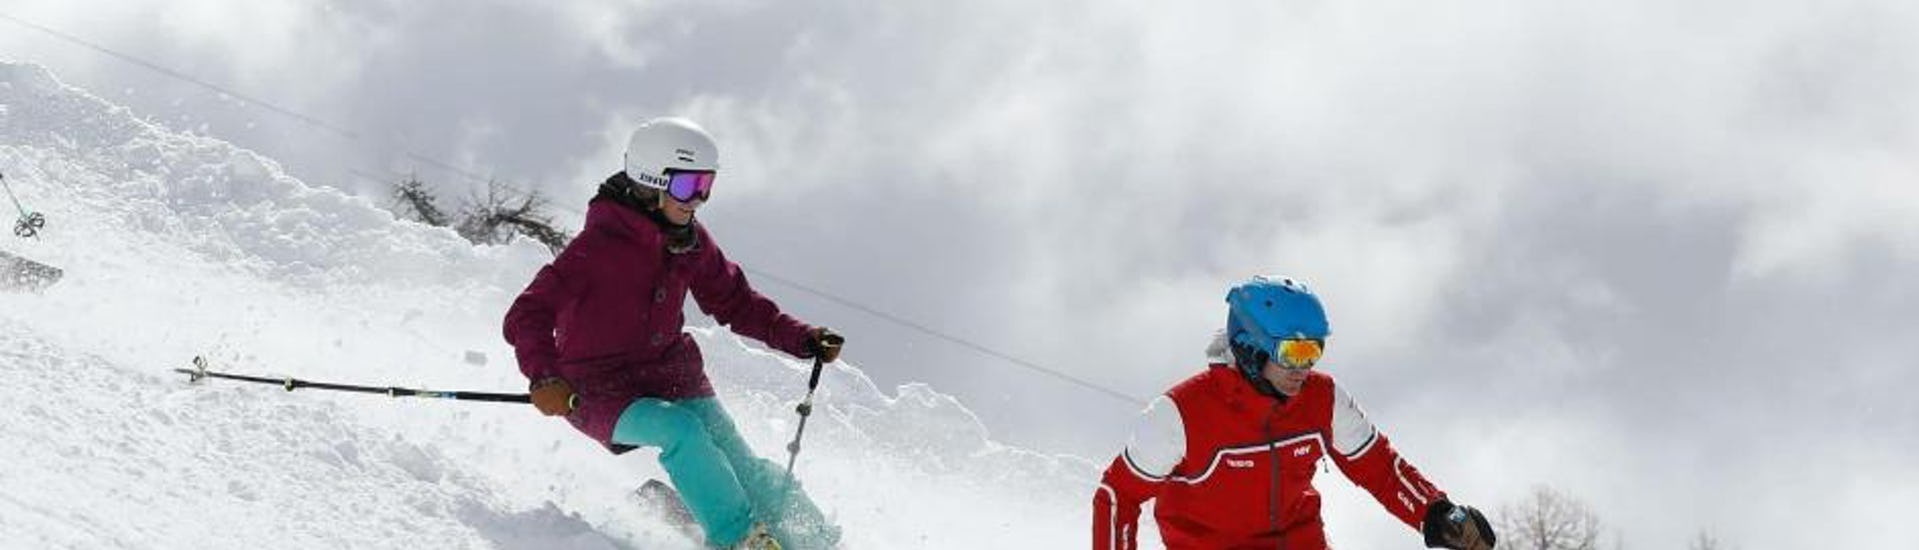 Ski Lessons for Teens (13-18y) - High Season - Afternoon